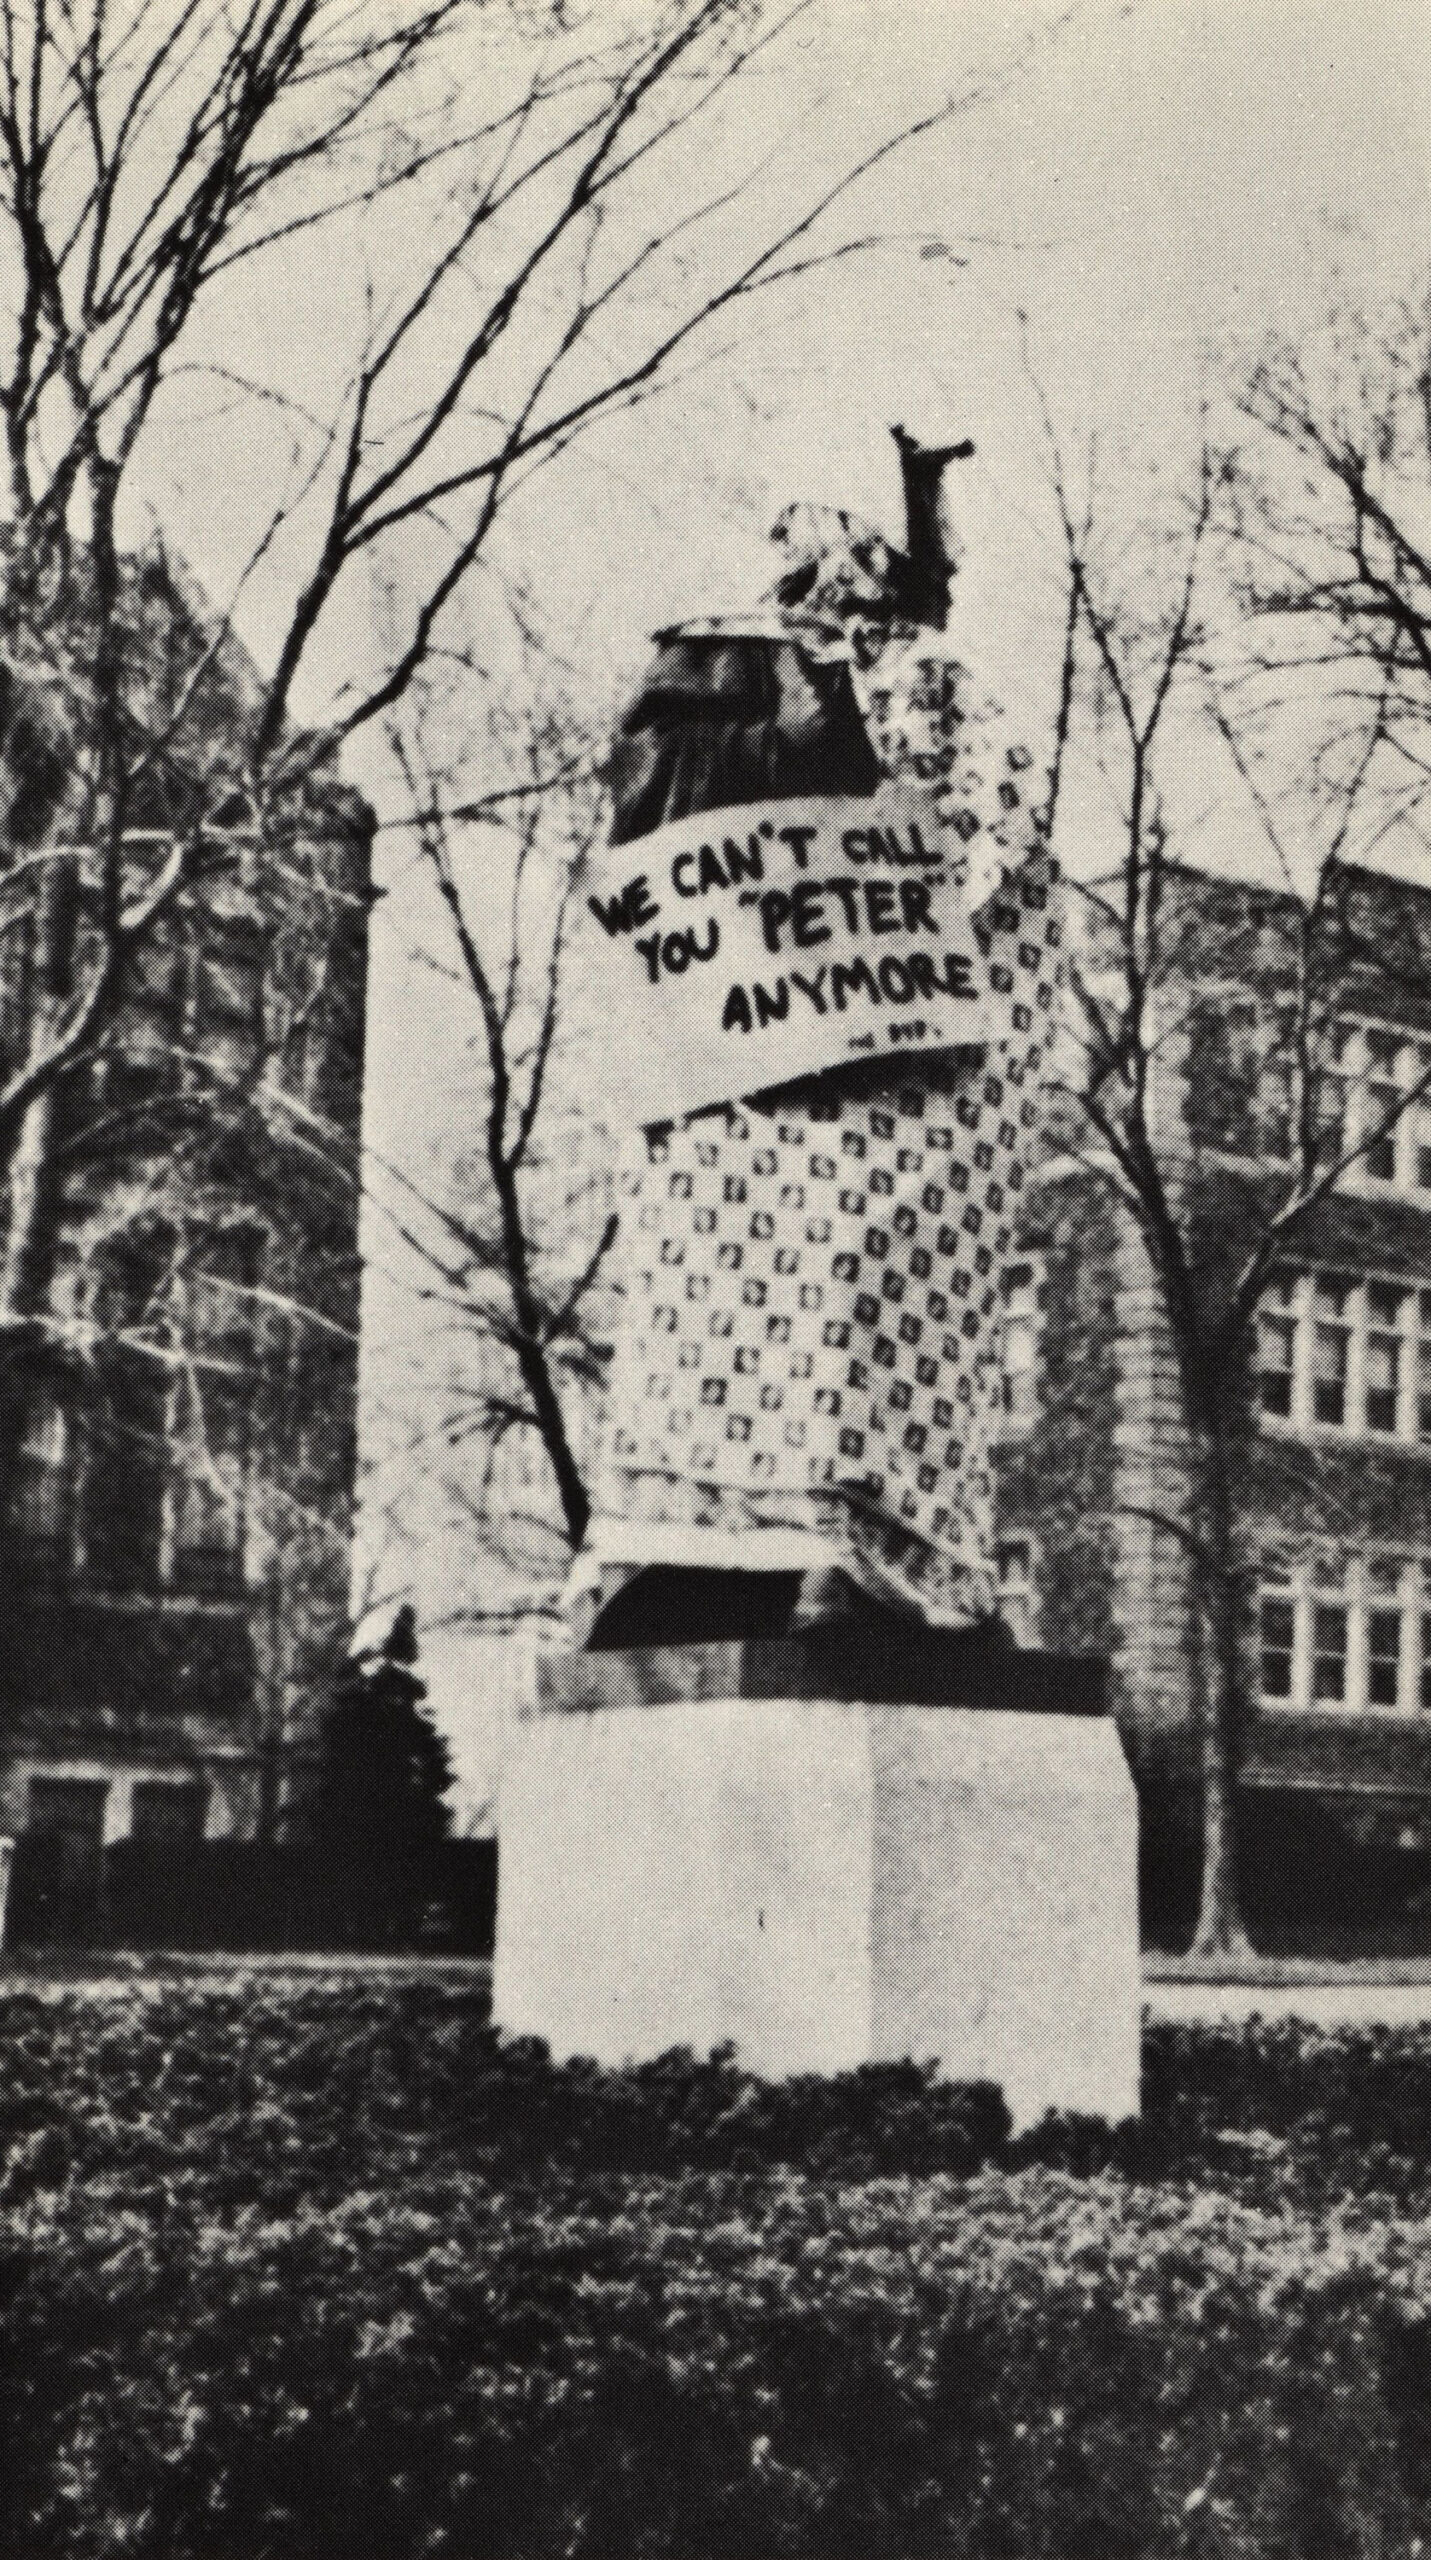 Statue of General Peter Muhlenberg is wrapped in a dress in protest of coeducation, 1957